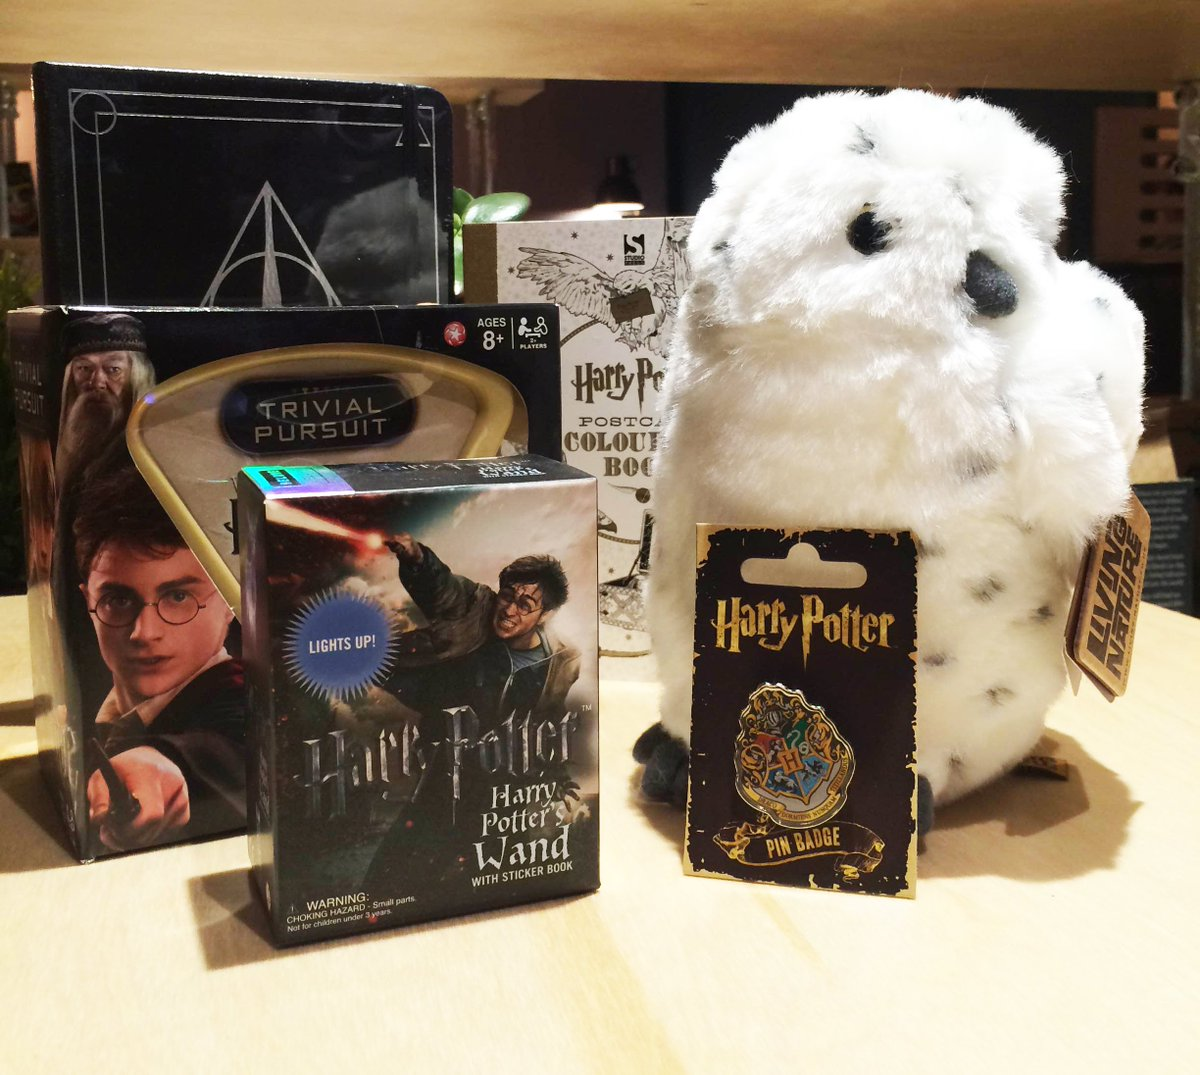 Retweet to #WIN these #HarryPotter goodies AND a copy of #CursedChild thanks to @waterstonesWQ. Closes 12pm 1/8/16 https://t.co/MrRzOBNxOu